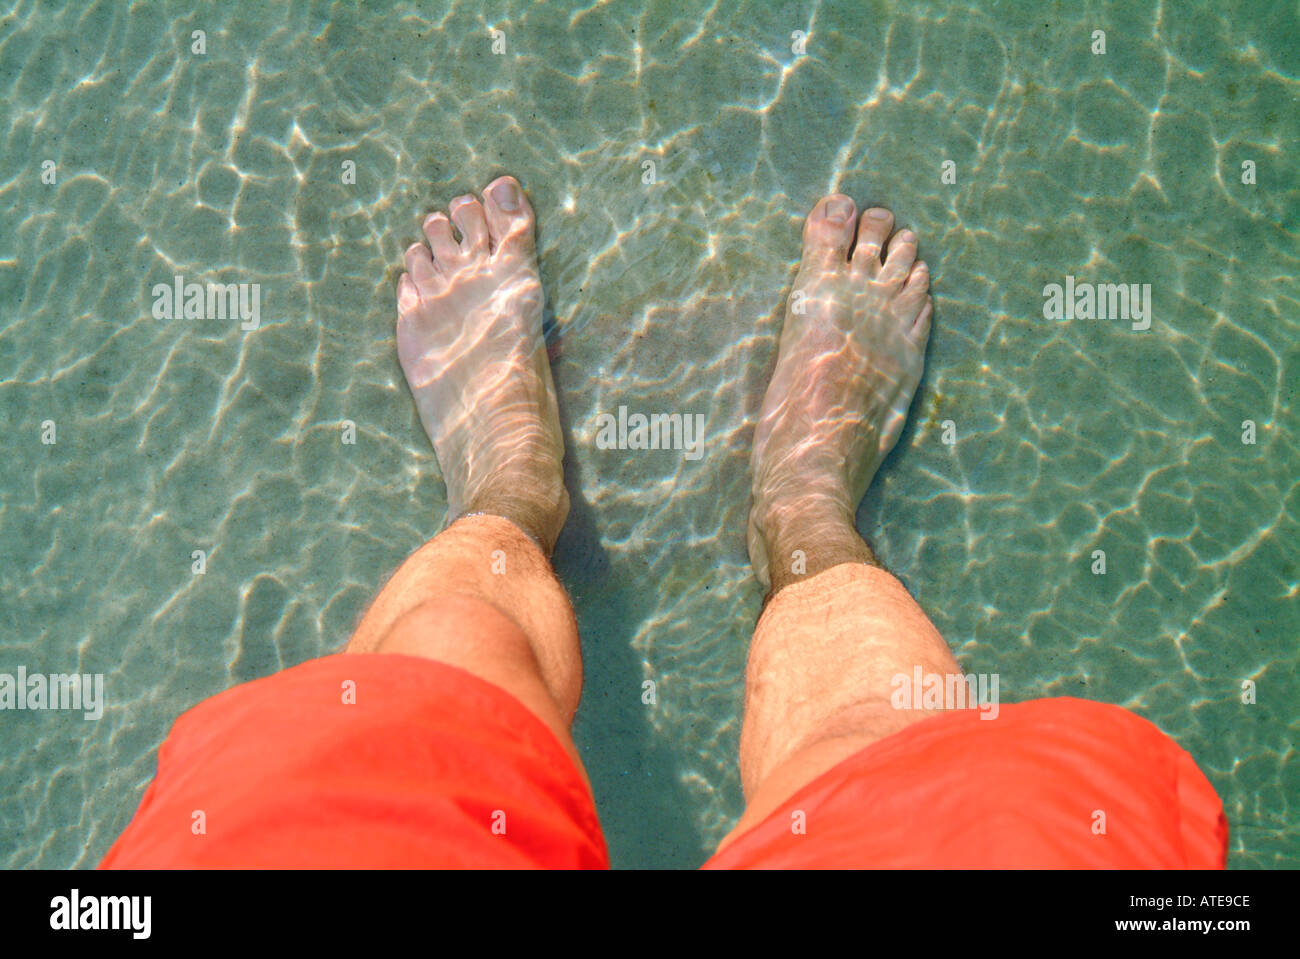 a bather s feet in shallow sea water and sand - Stock Image